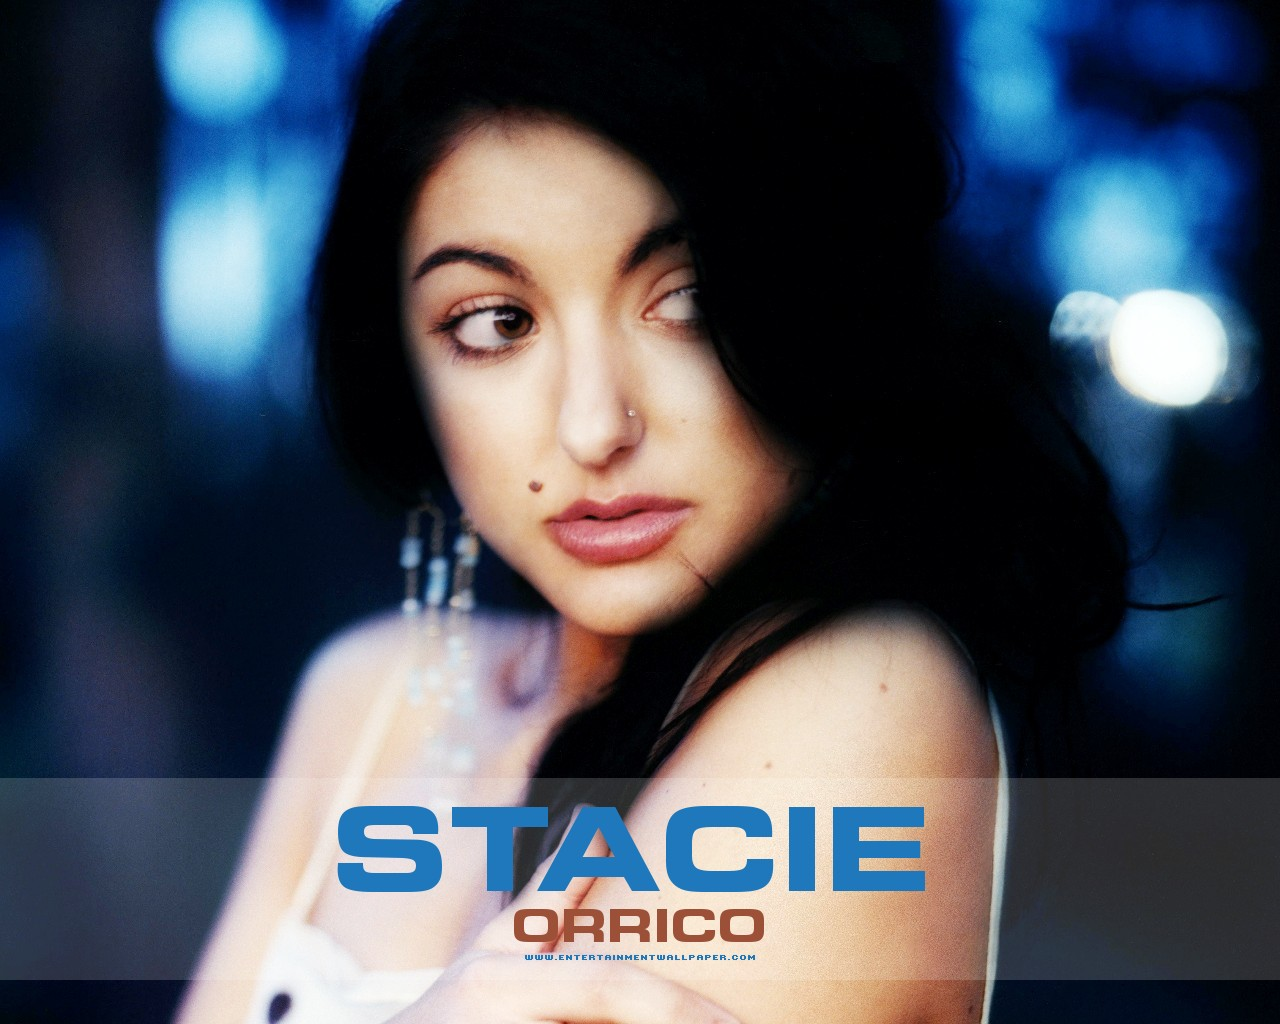 Stacie Orrico - Wallpaper Hot